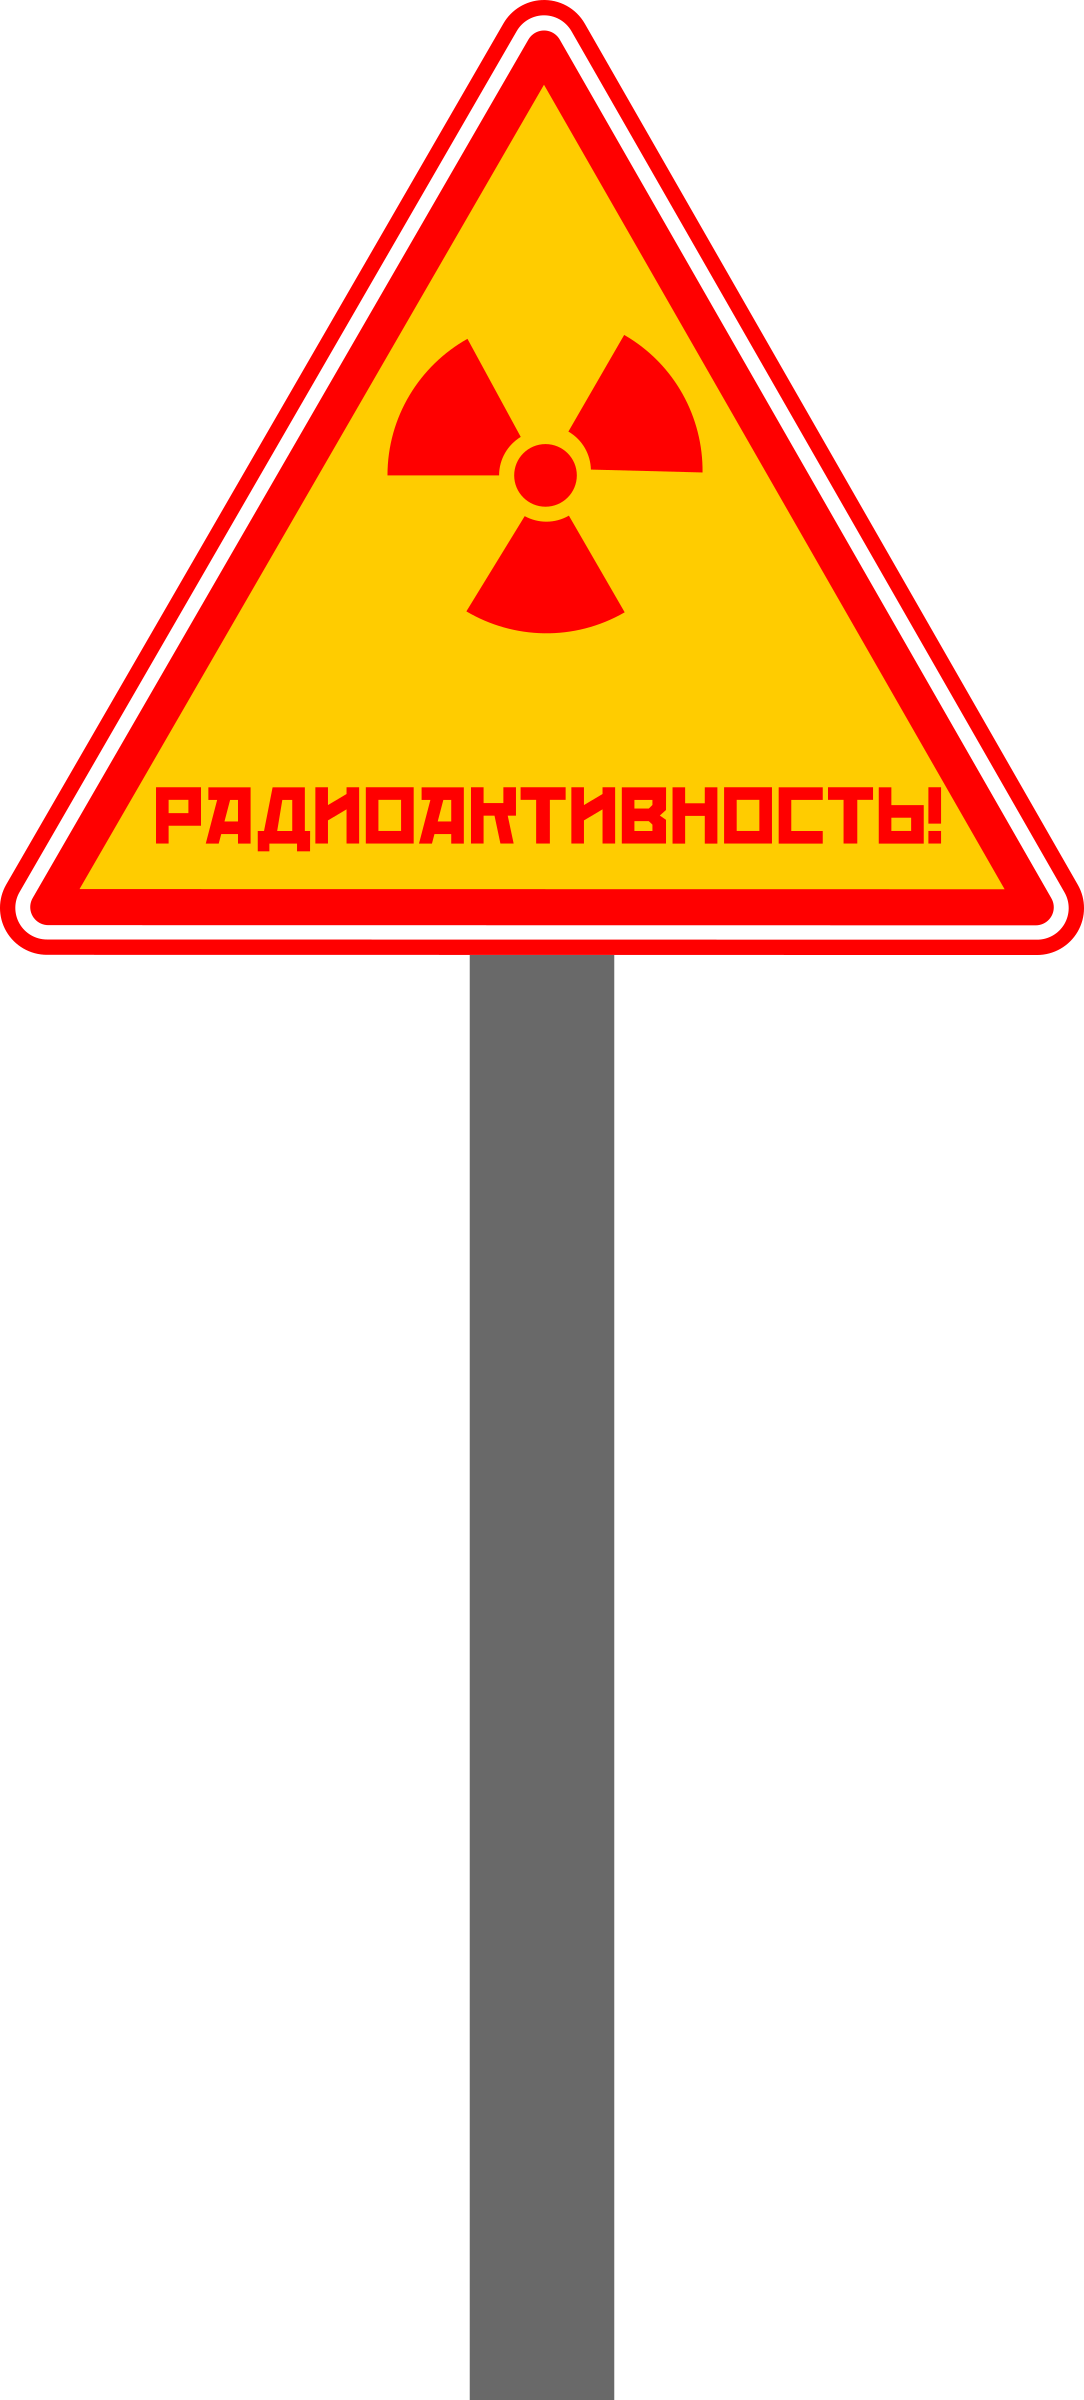 Russian Radioactive Sign by derkommander0916